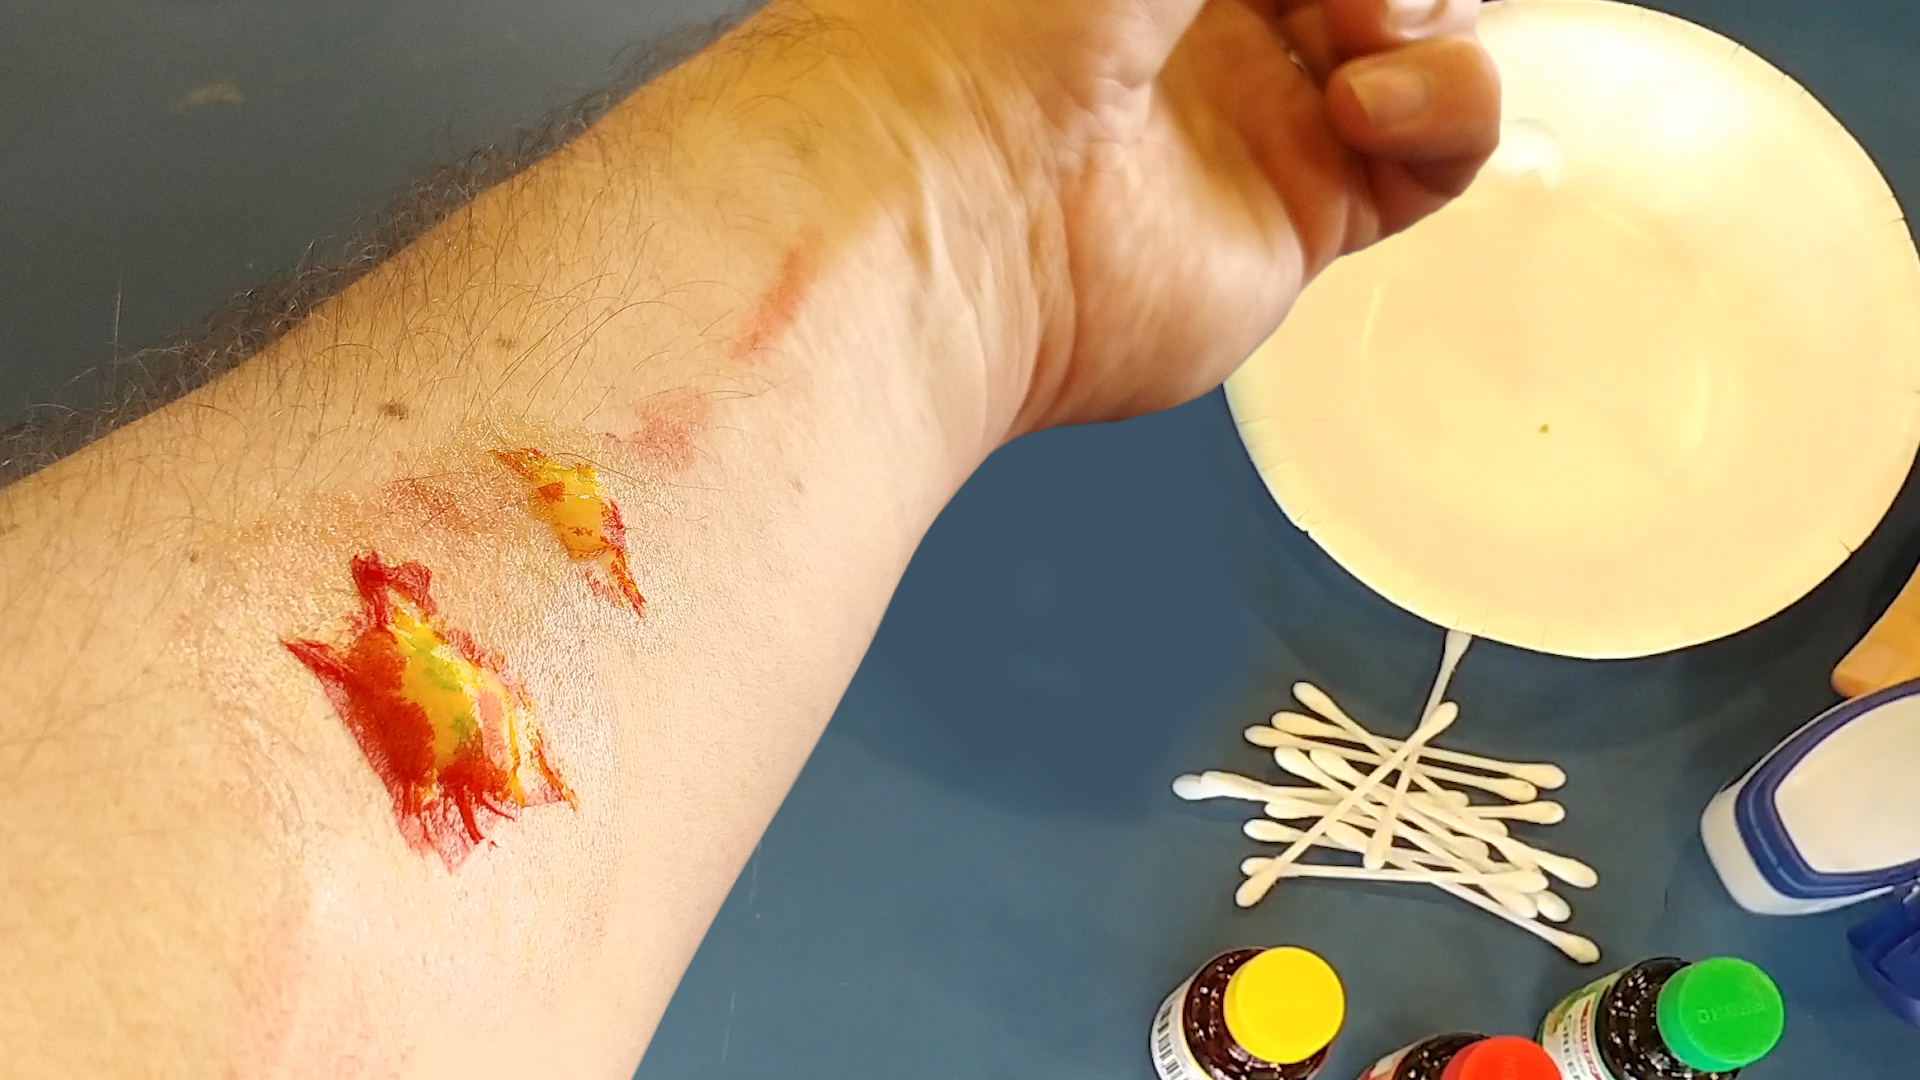 Fake special effects wound make-up